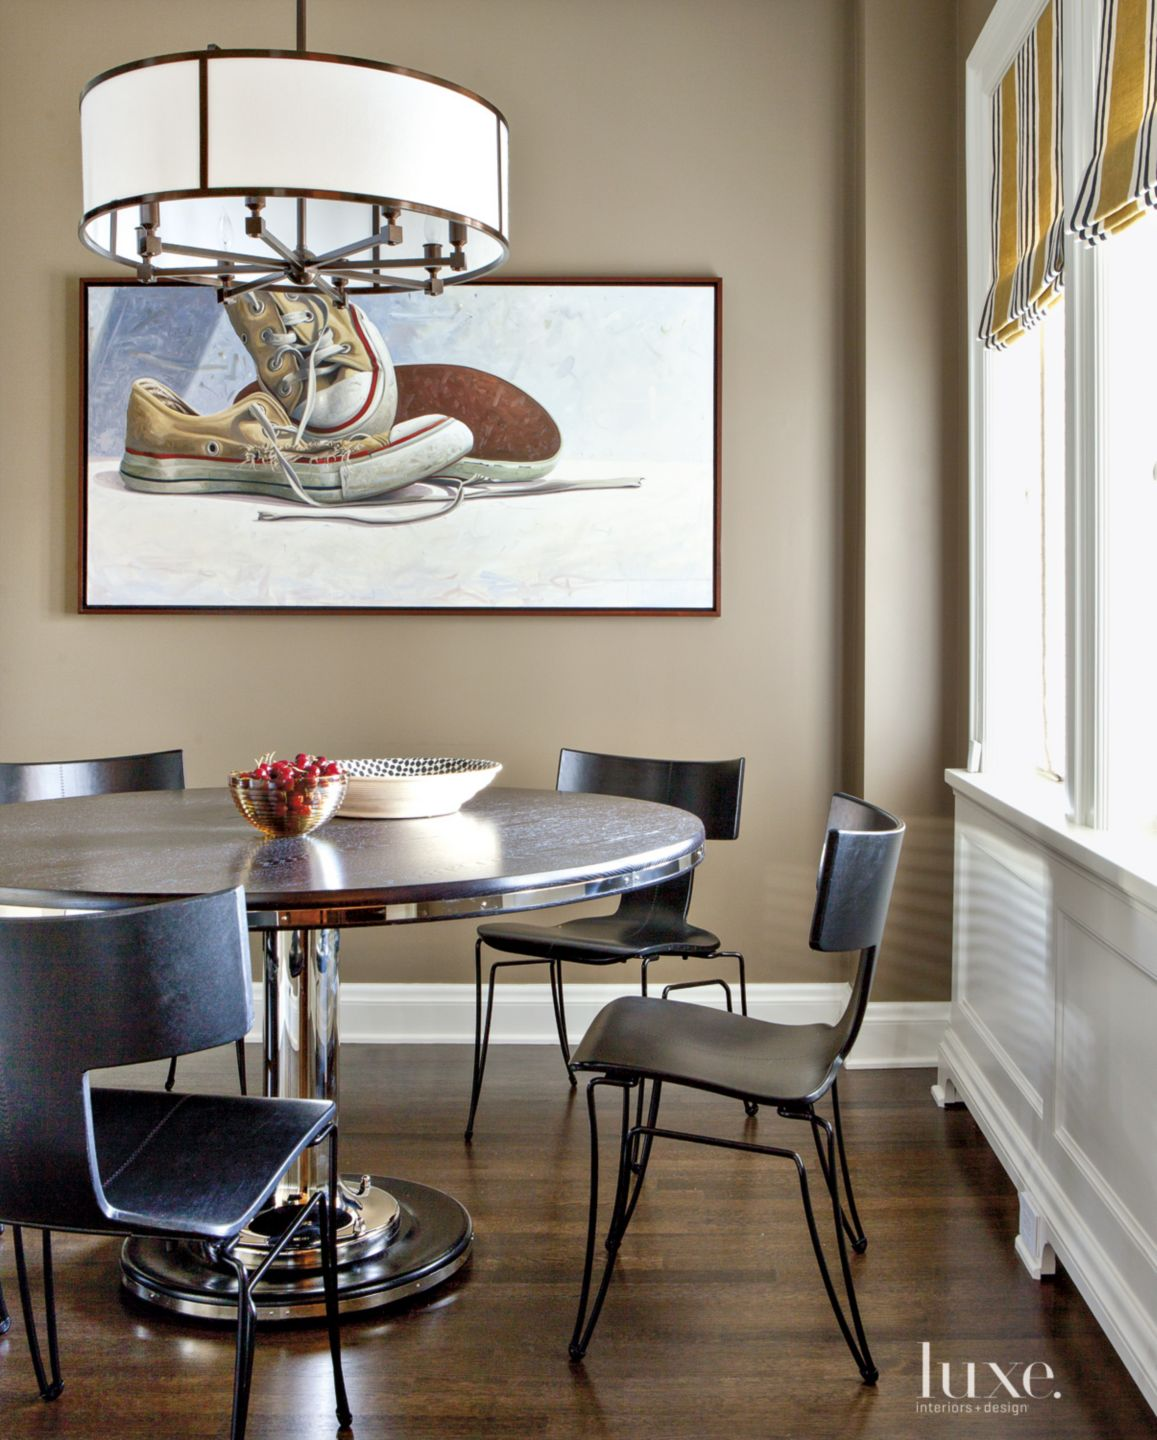 Eclectic Neutral Breakfast Area with Yacht Table